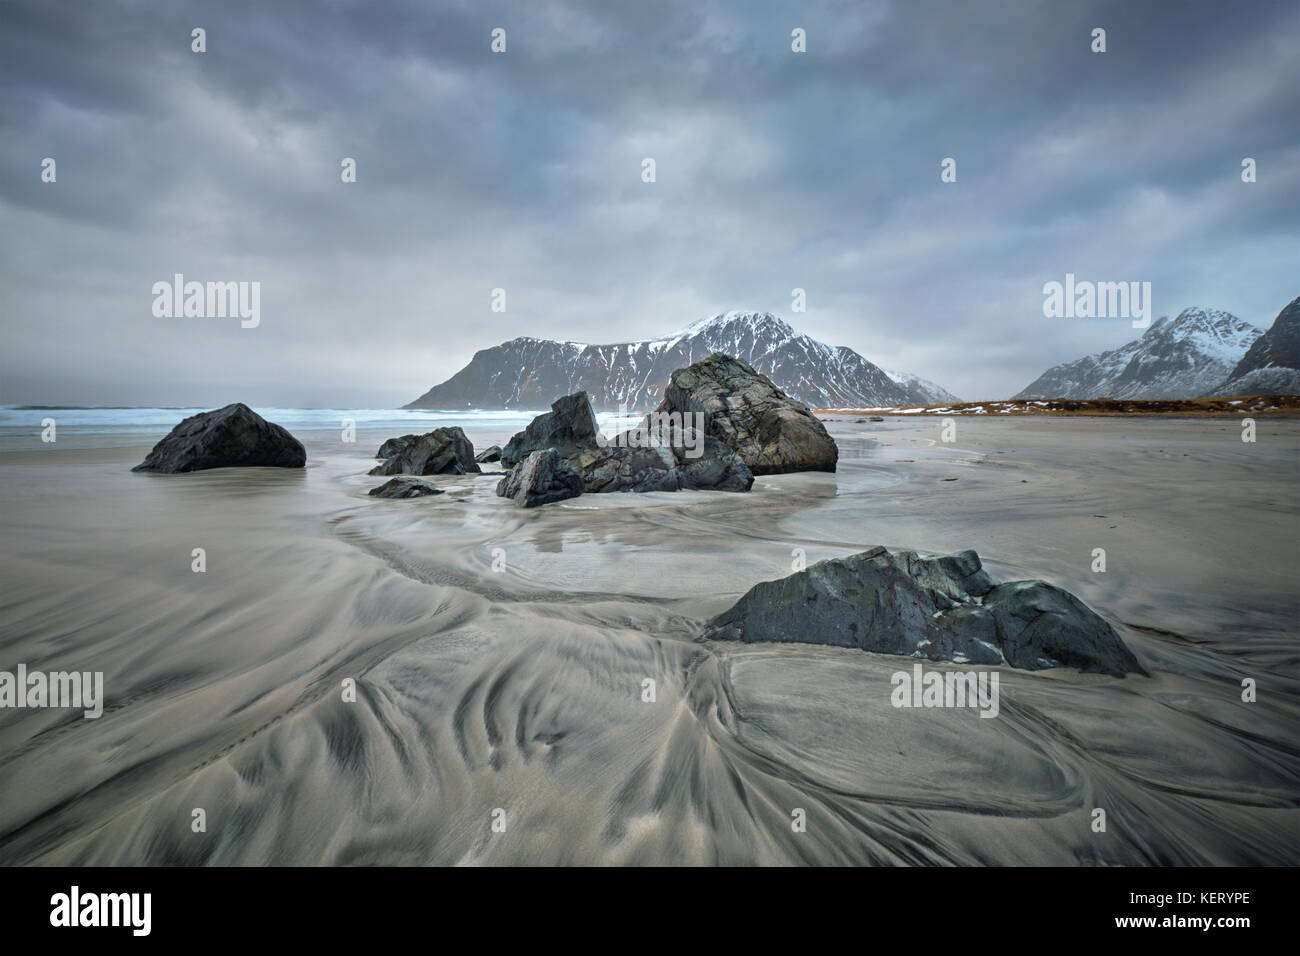 Strand von Fjord in Norwegen Stockfoto